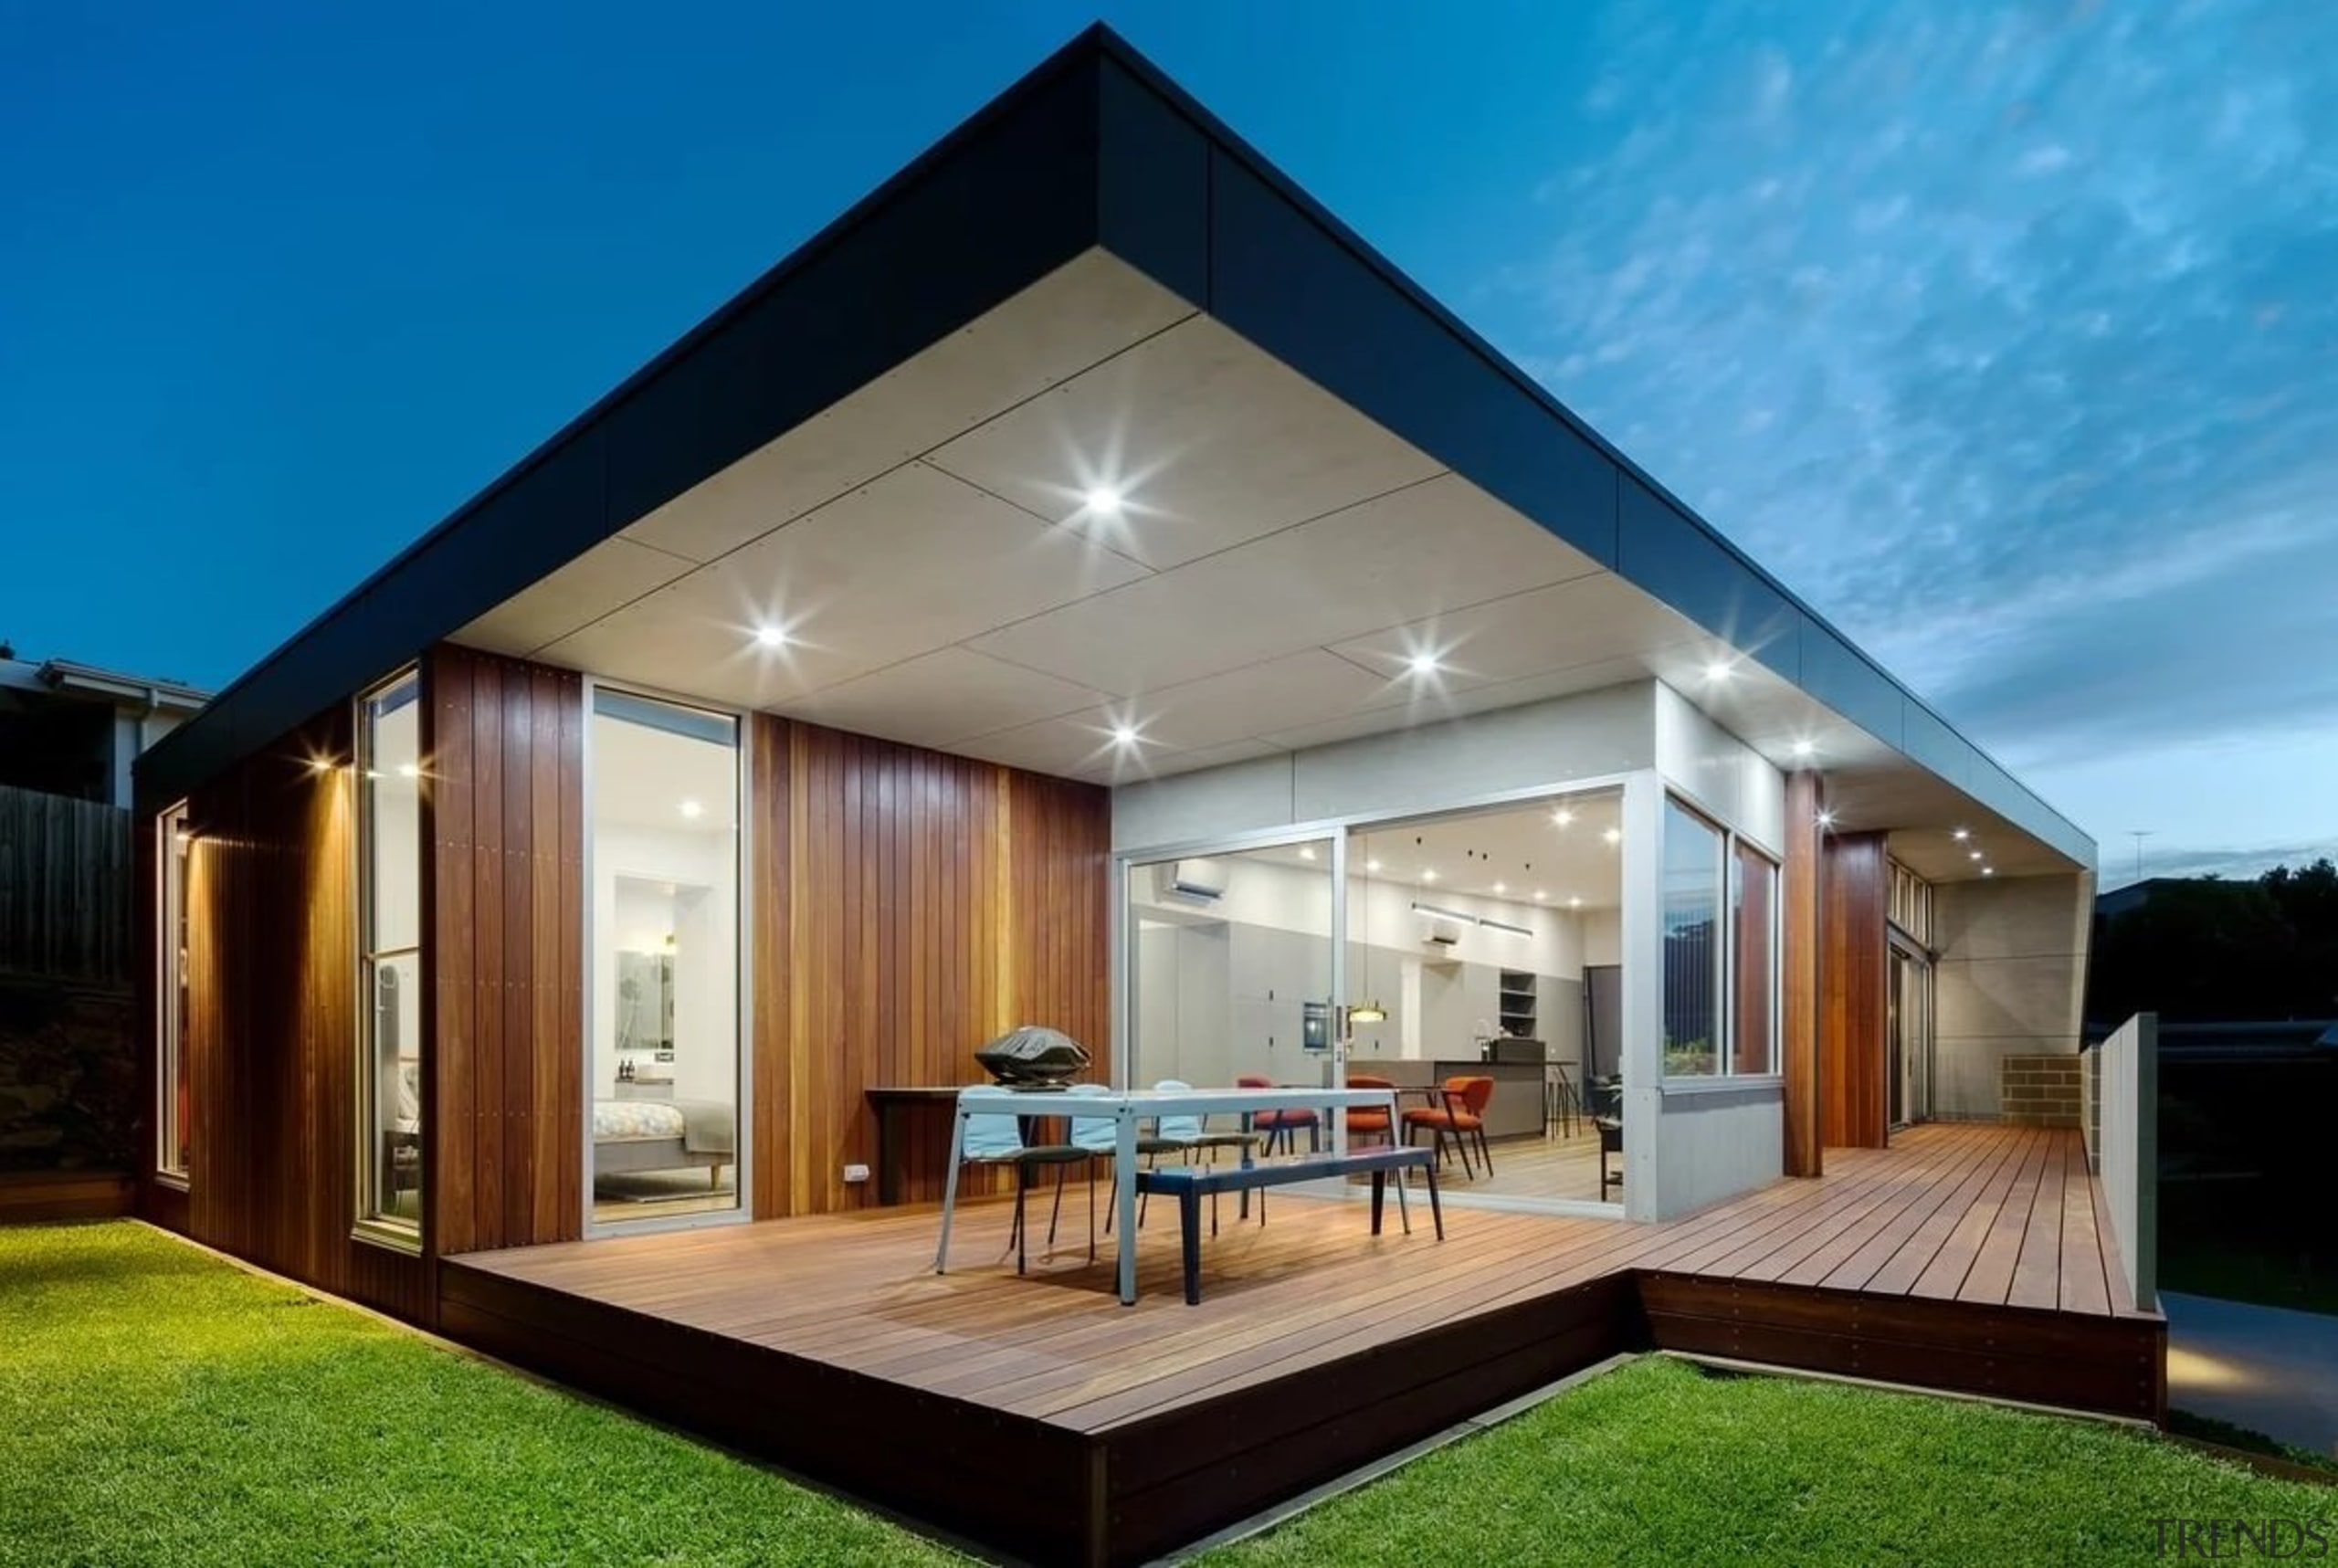 See the home here architecture, backyard, estate, facade, home, house, interior design, property, real estate, residential area, roof